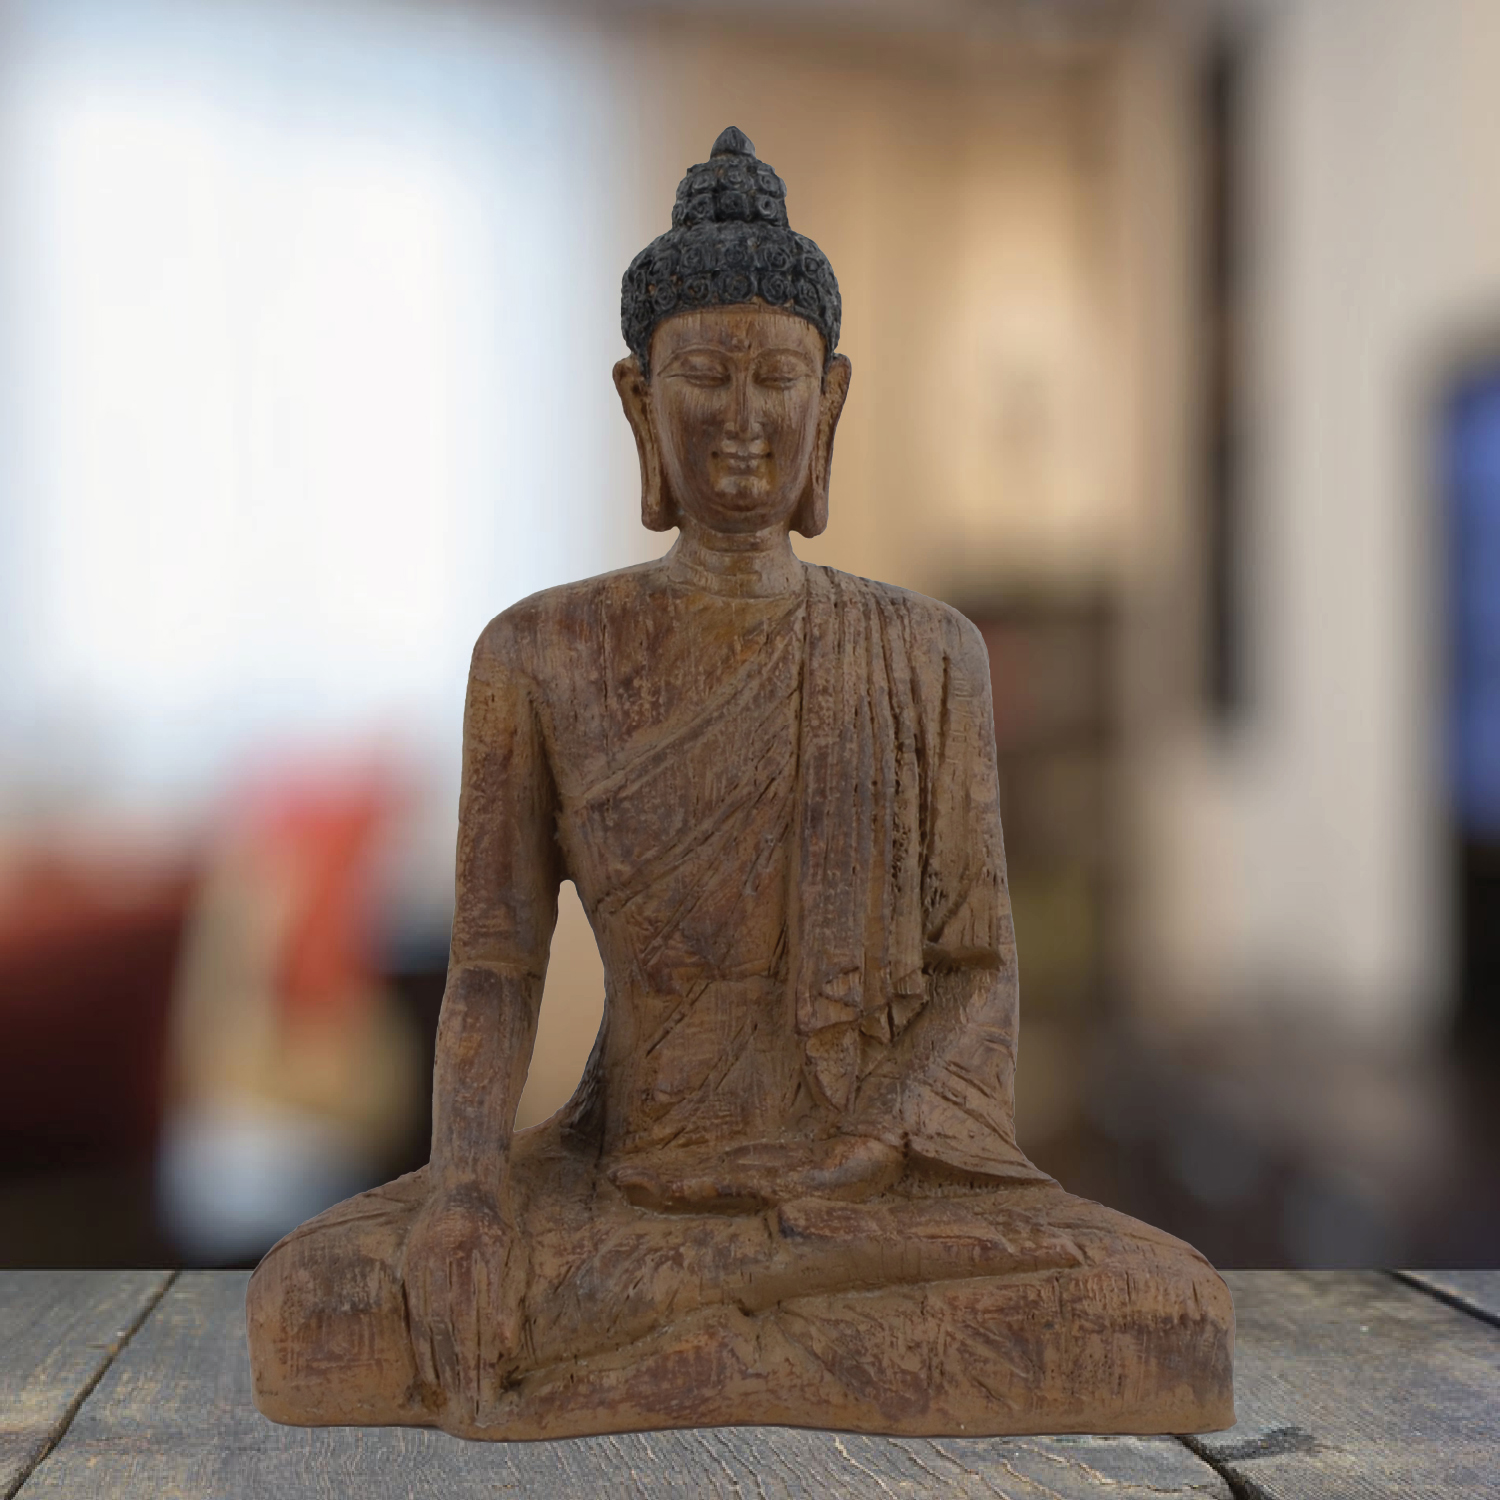 Sitting Buddha statue in carded wood effect.